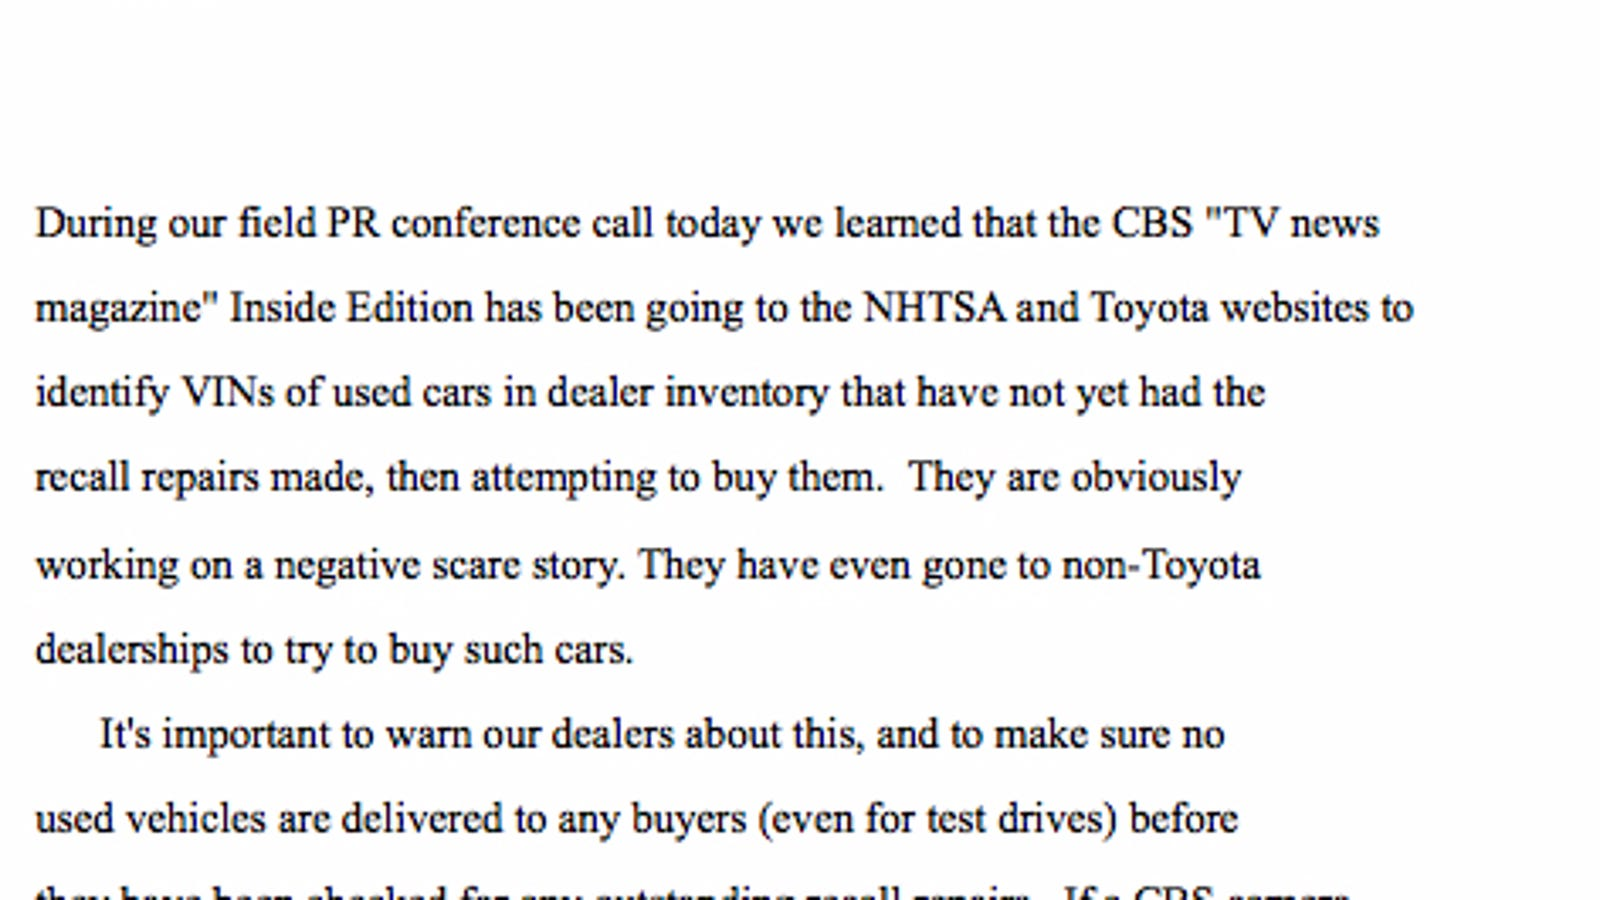 Toyota Warns Dealers To Fix Recalled Used Cars Before Selling Them